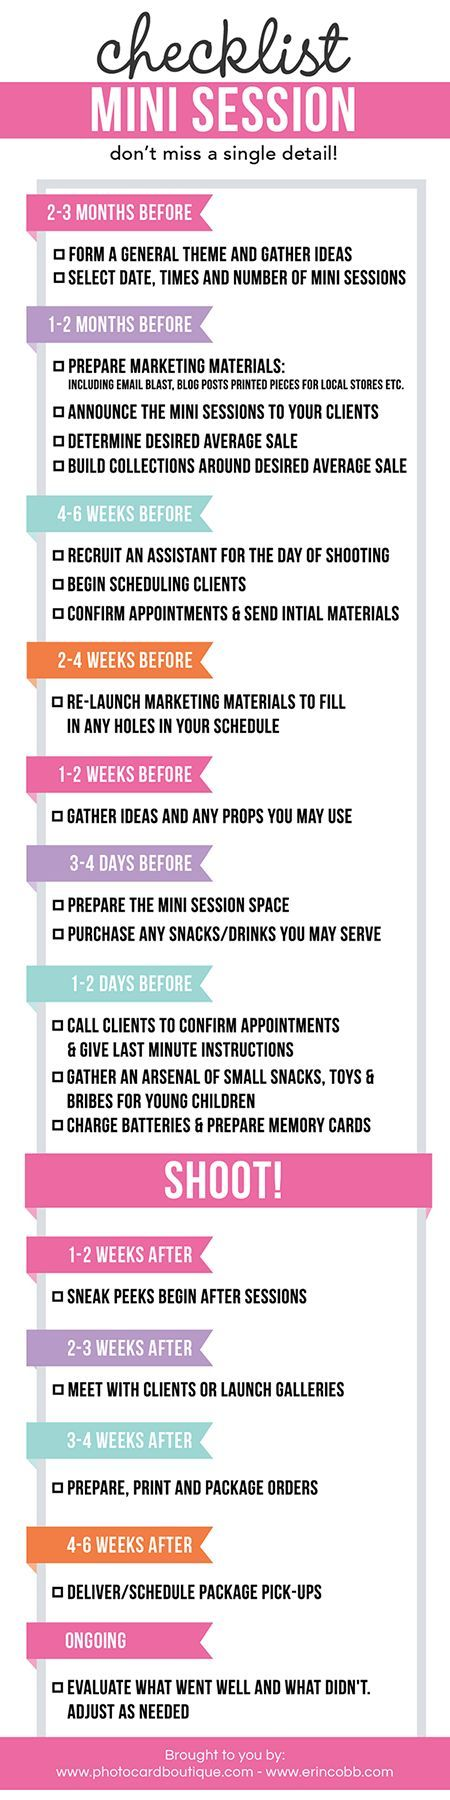 Free Mini Session Checklist Download One of my favorite parts of my business is working with photographers to create useful products. I have been in the process